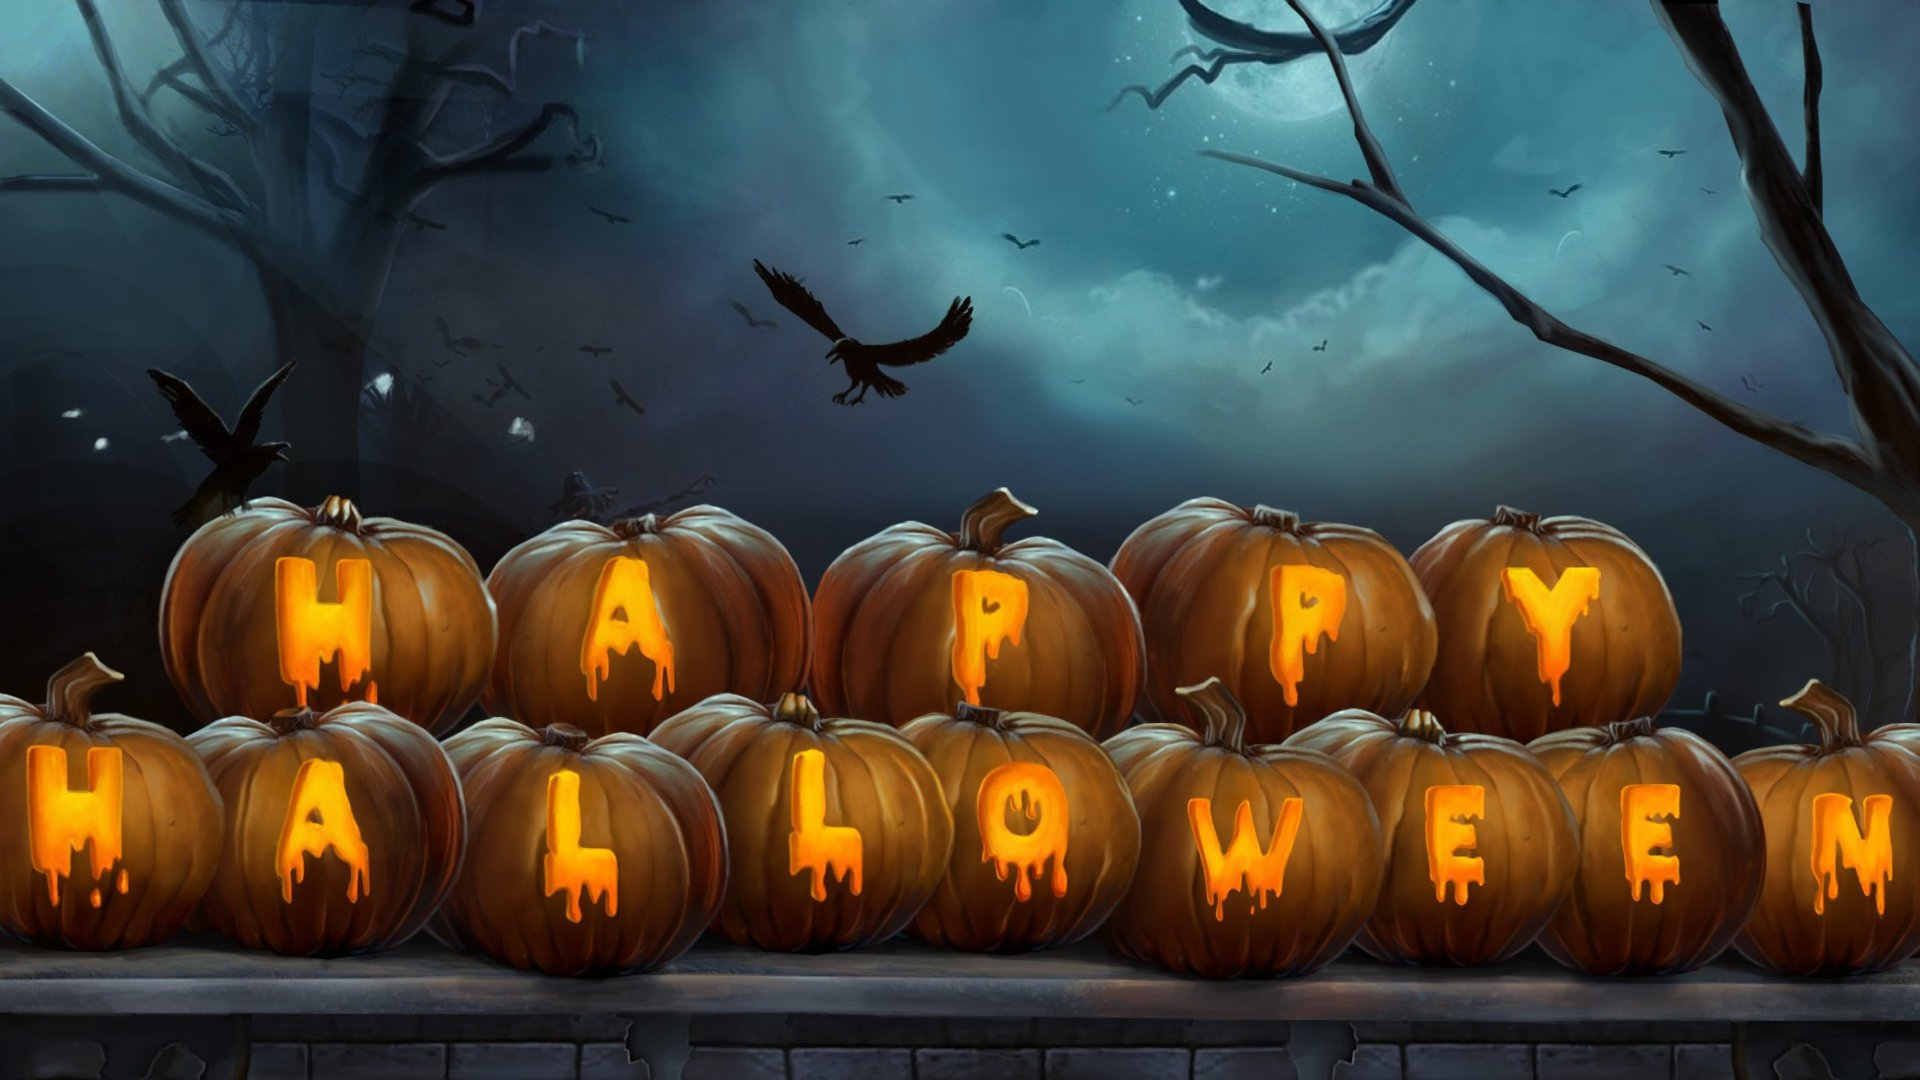 trick or treat 20 hd wallpapers for your halloween spirit rh androidguys com